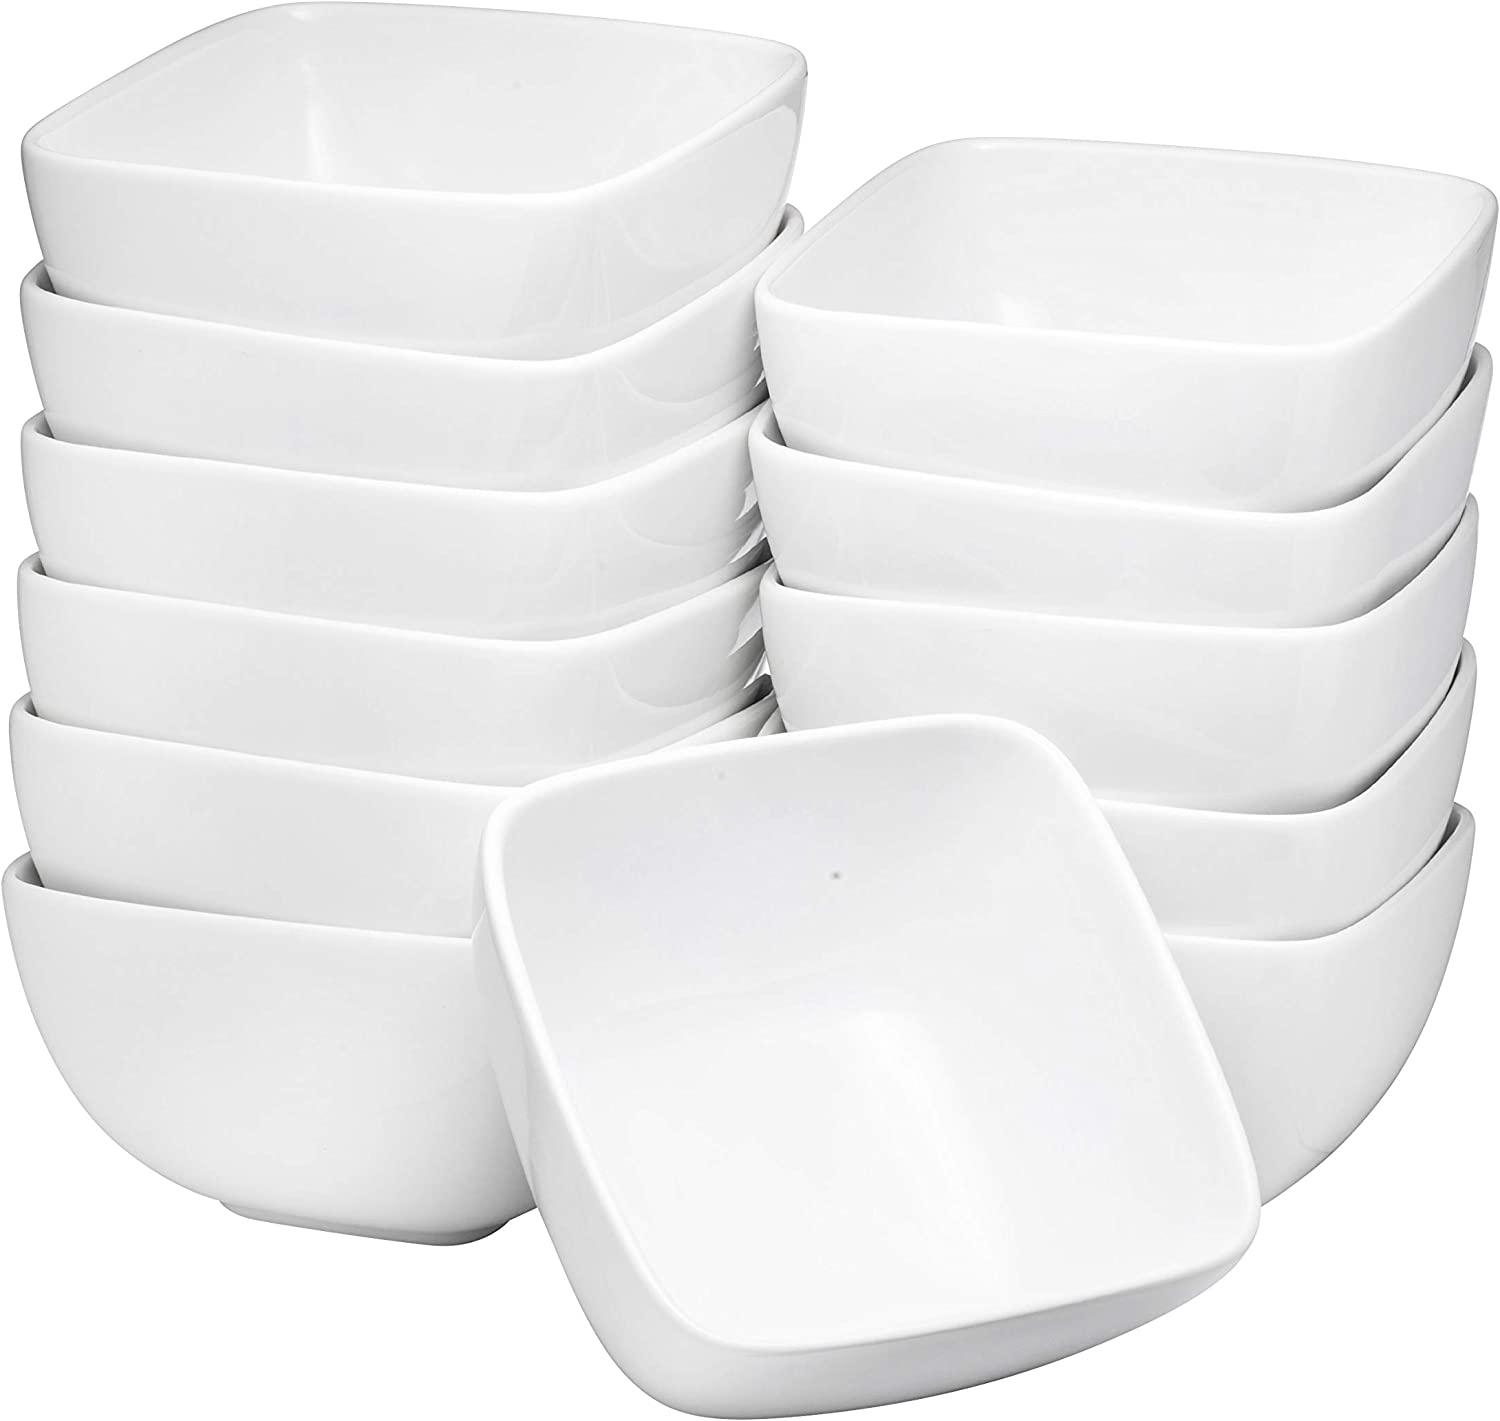 Bruntmor Large Ceramic Square Bowls 26 Oz Durable Non Toxic Ceramic Bowls Set Of 12 White Chip Resistant For Pasta Berries Soup Cereal Microwave Safe Appetizer Bowl Amazon Ca Home Kitchen